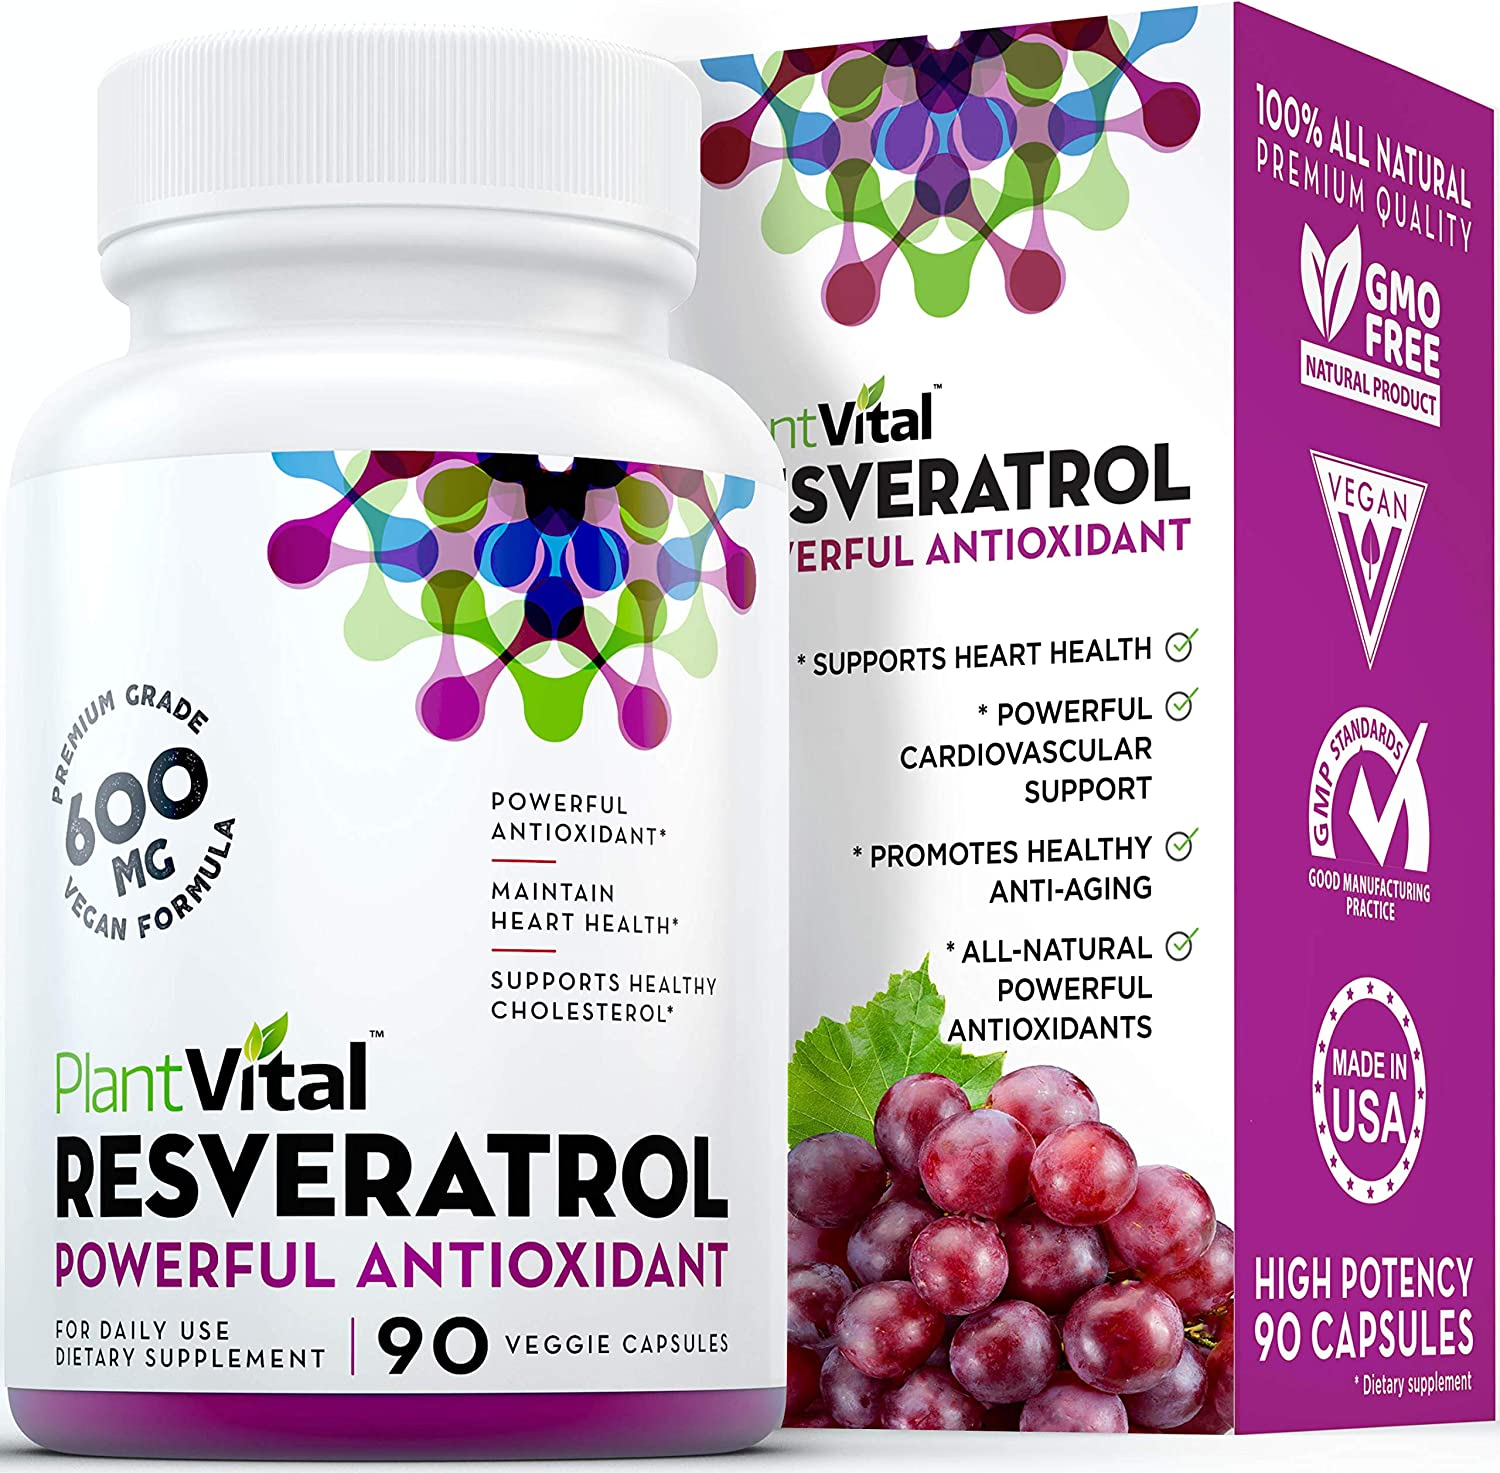 New Resveratrol High Potency 90 Vegan Capsules Not Pills